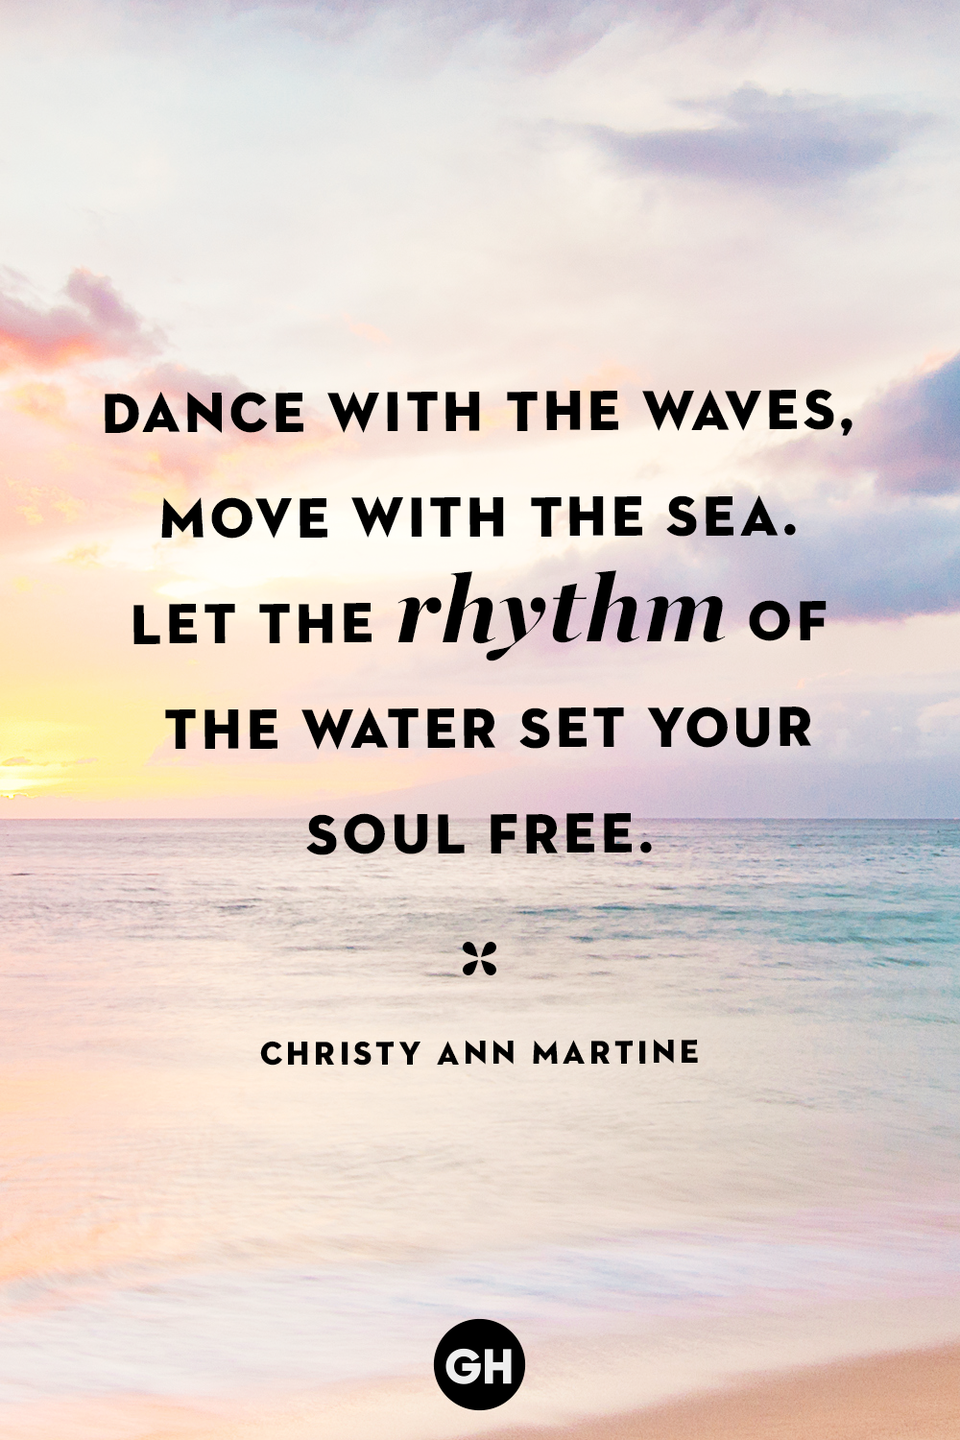 <p>Dance with the waves, move with the sea. Let the rhythm of the water set your soul free.</p>